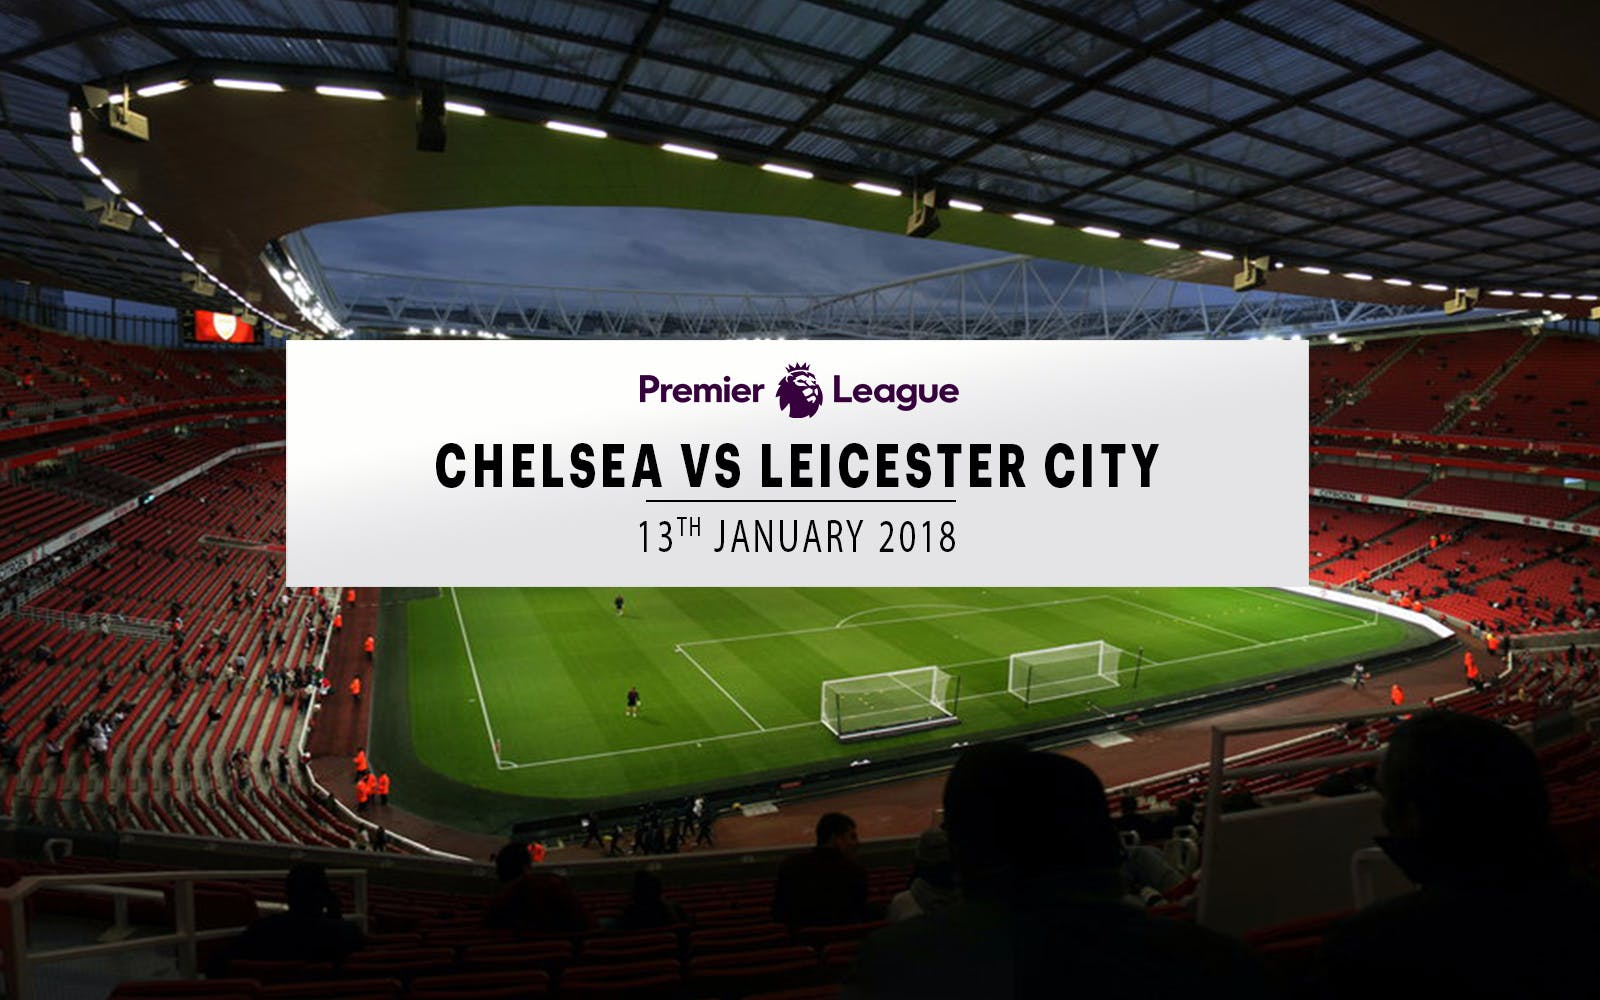 chelsea vs leicester city - 13th january 2018-1